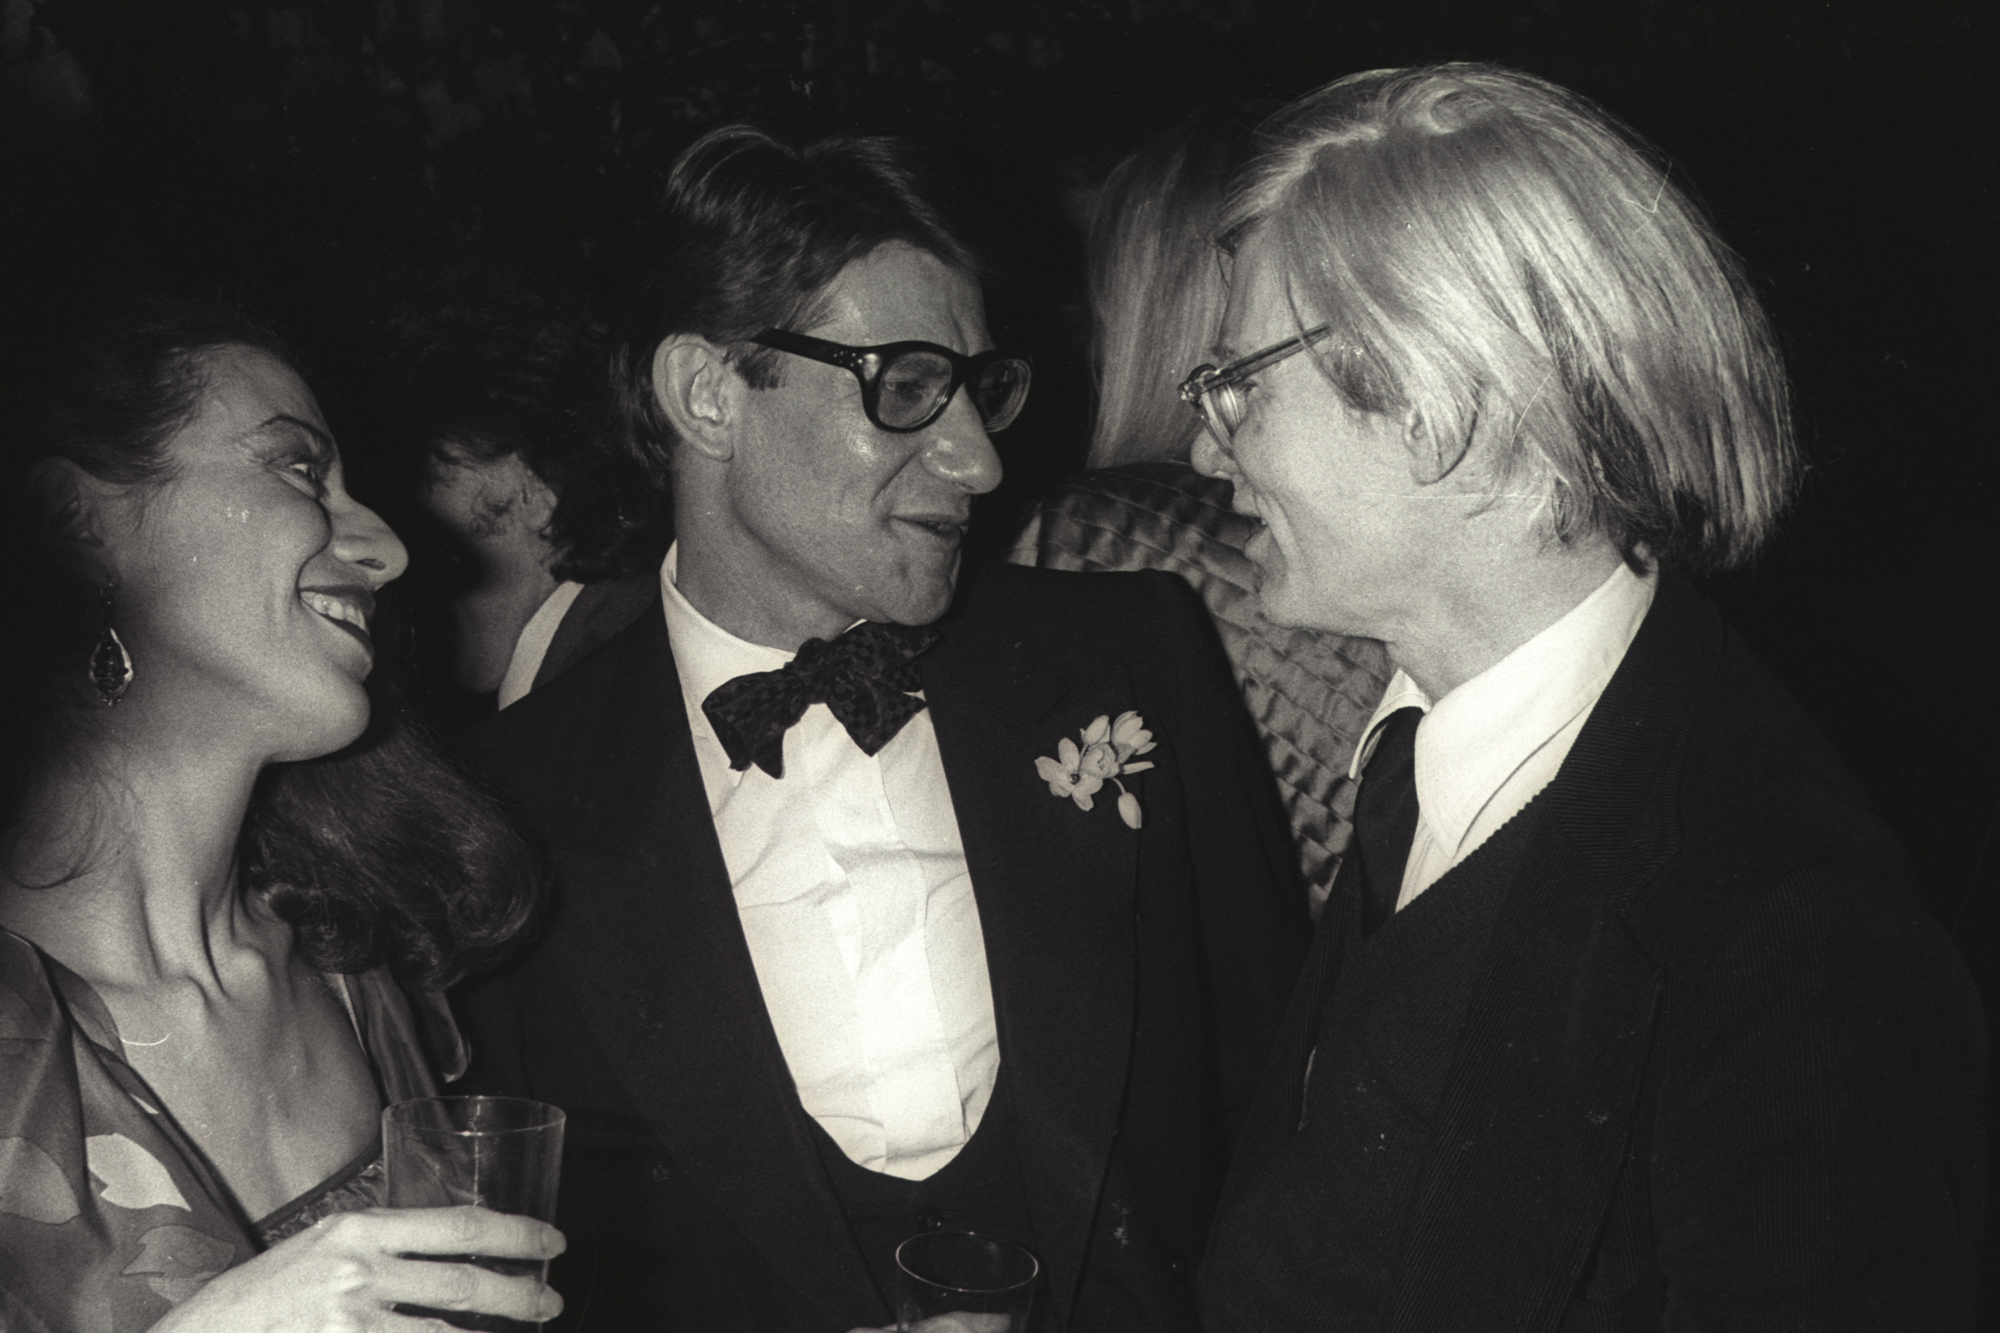 a389241ab598f Yves Saint Laurent and Andy Warhol at a party, Paris, 1979. Photograph by  Guy Marineau. © Musée Yves Saint Laurent Paris / Guy Marineau